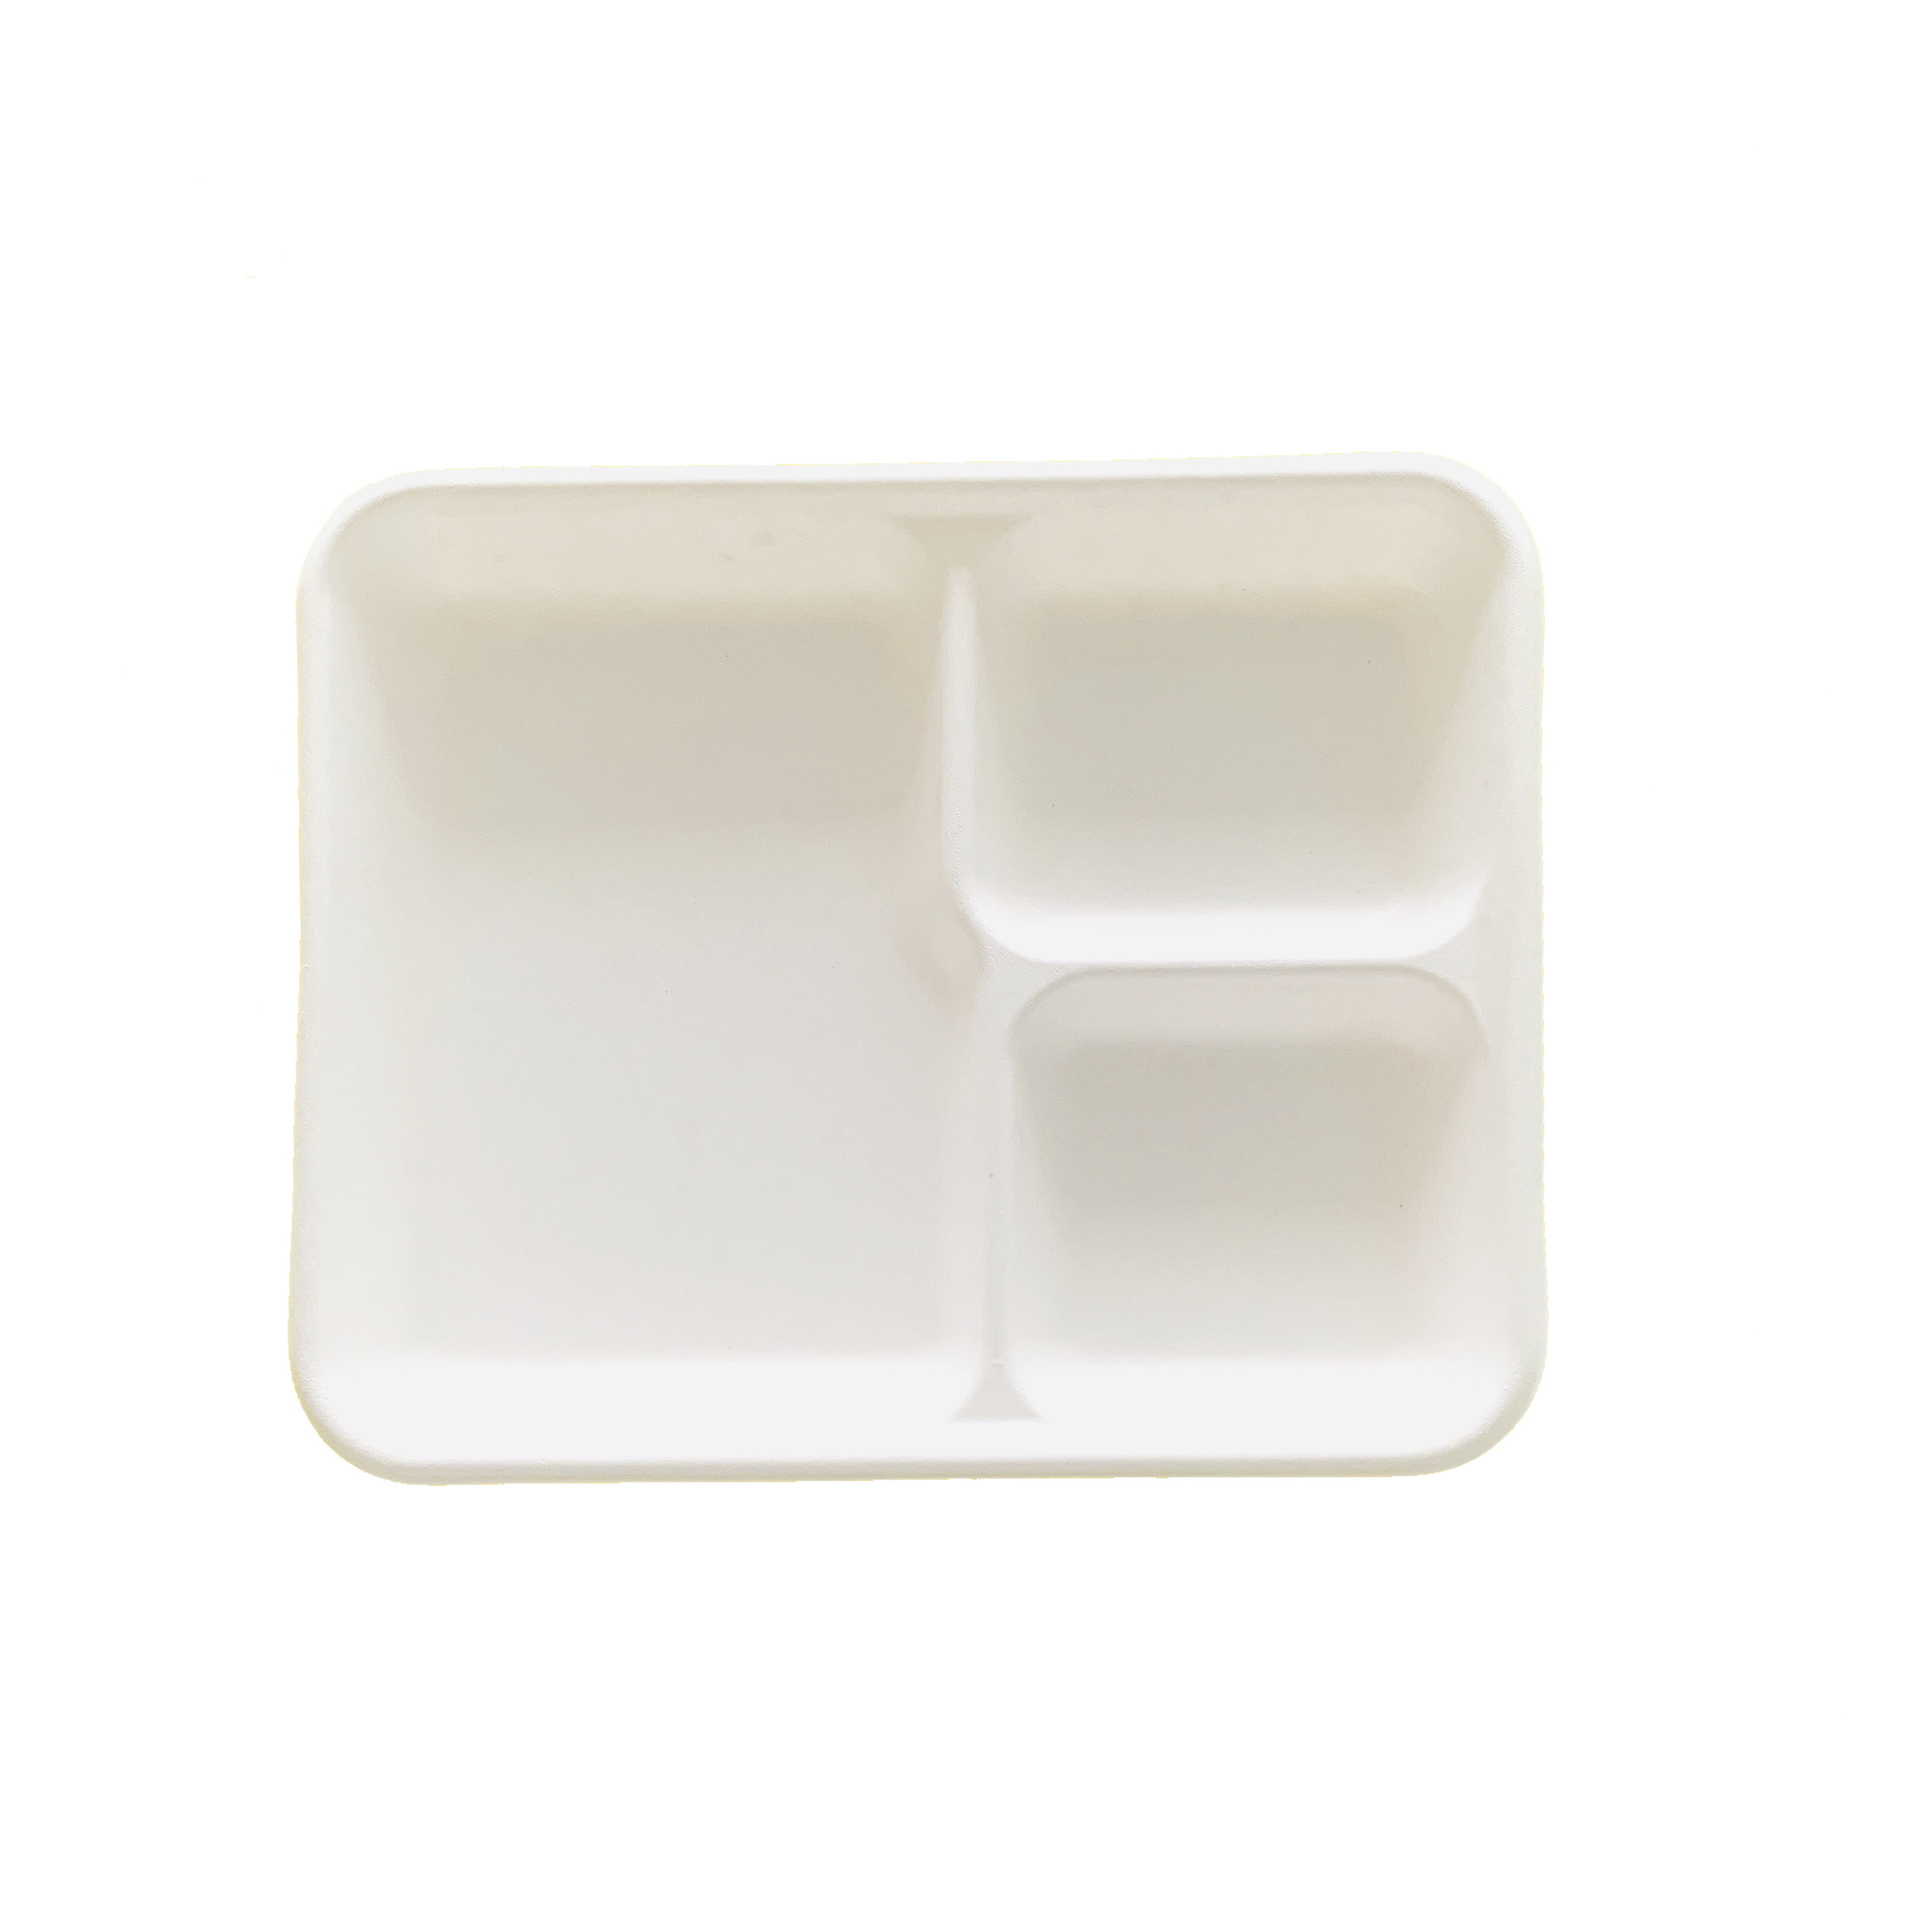 Greenweimo inch environmentally friendly lunch trays Suppliers for hot food-1